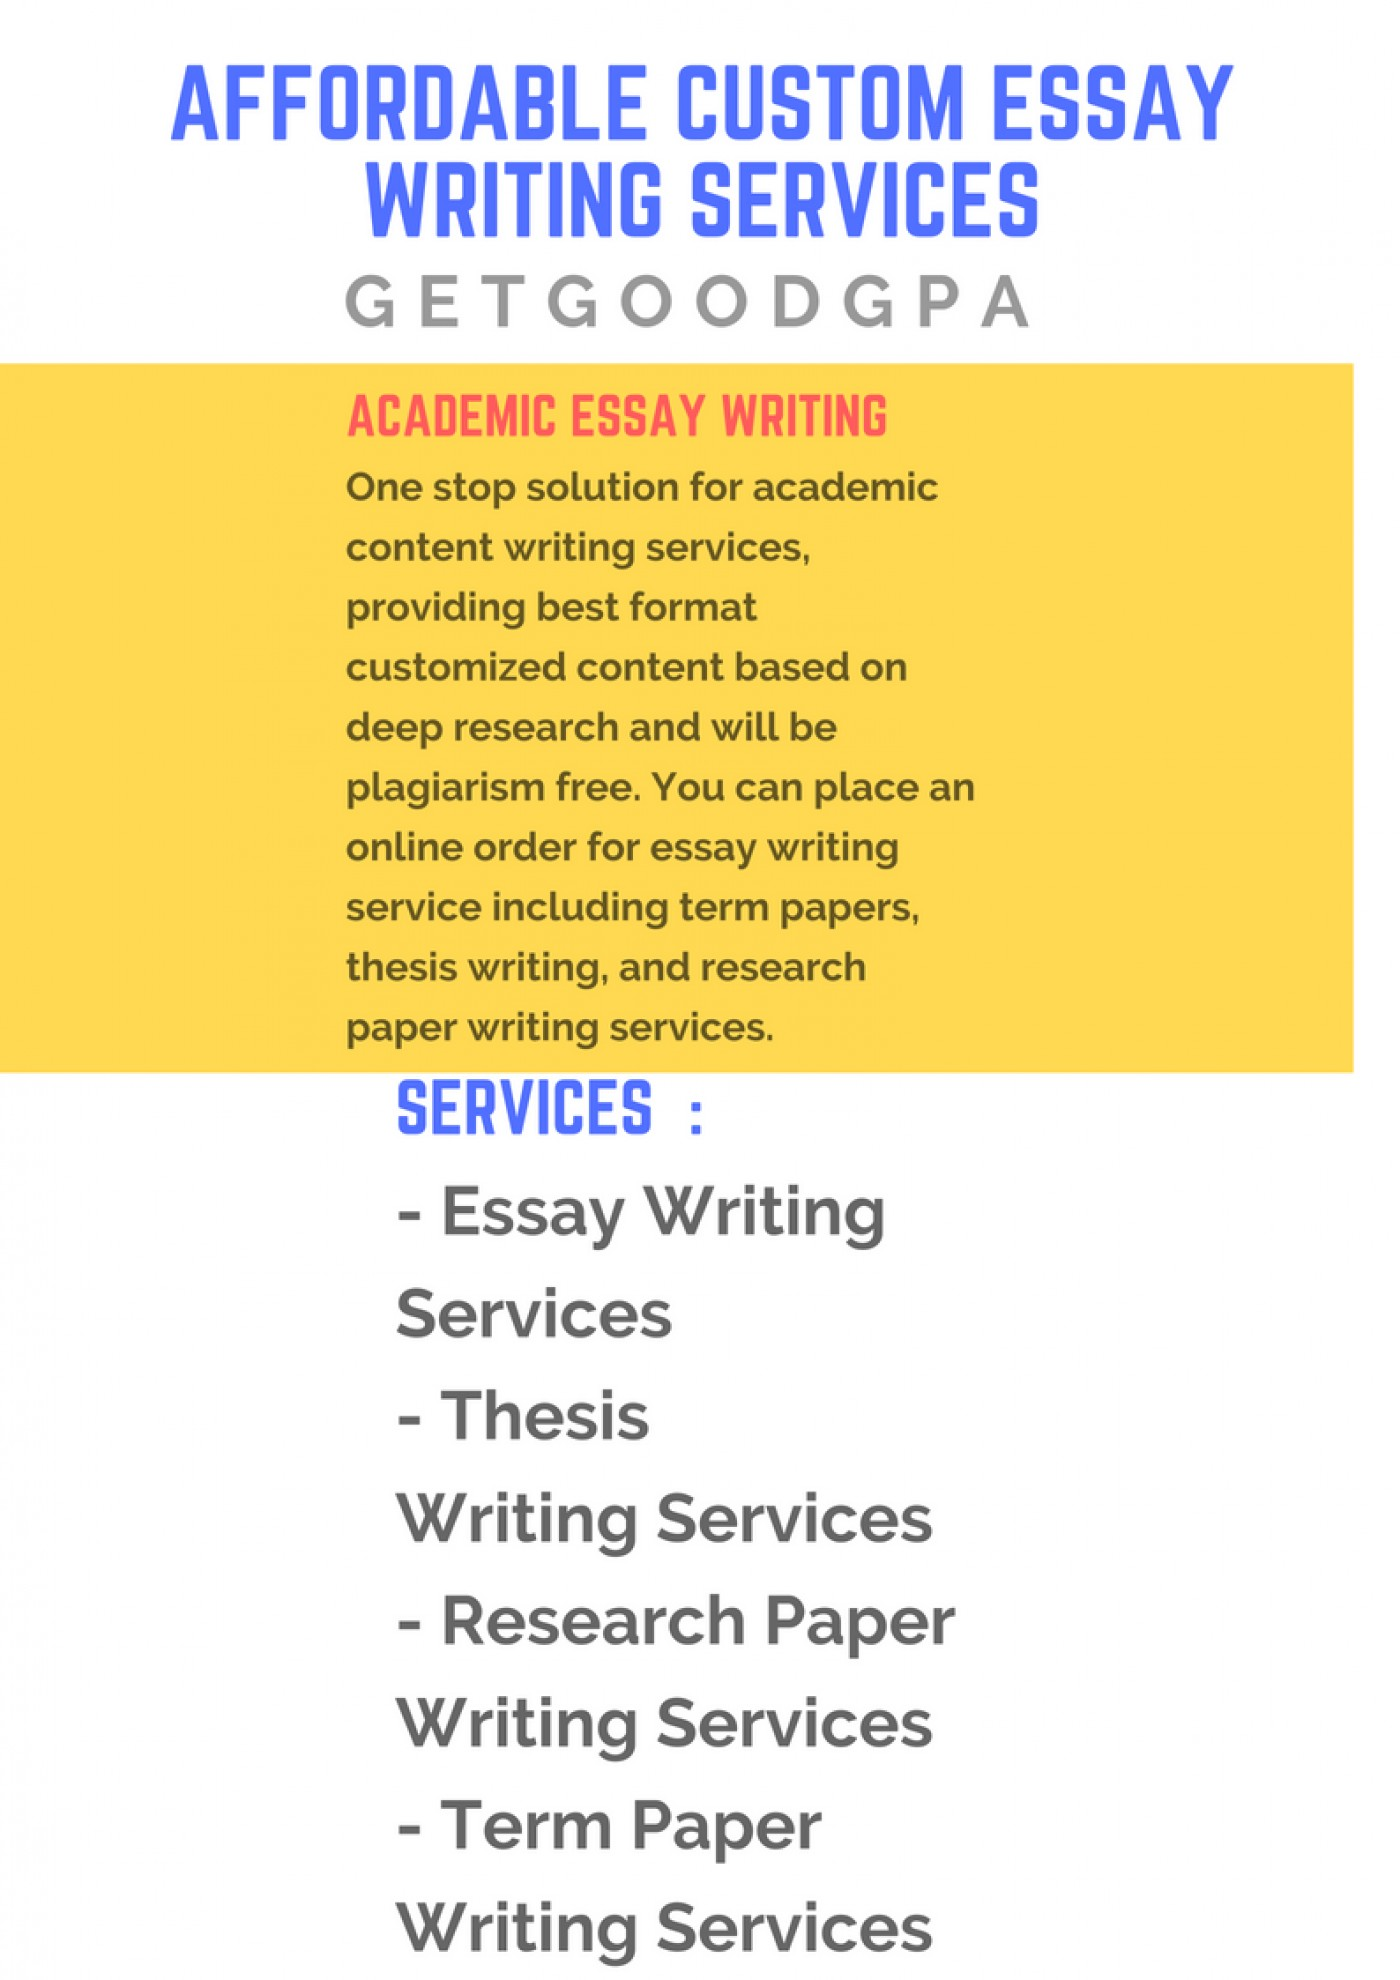 002 Research Paper Writing Services Archaicawful In Delhi Service Reviews 1400